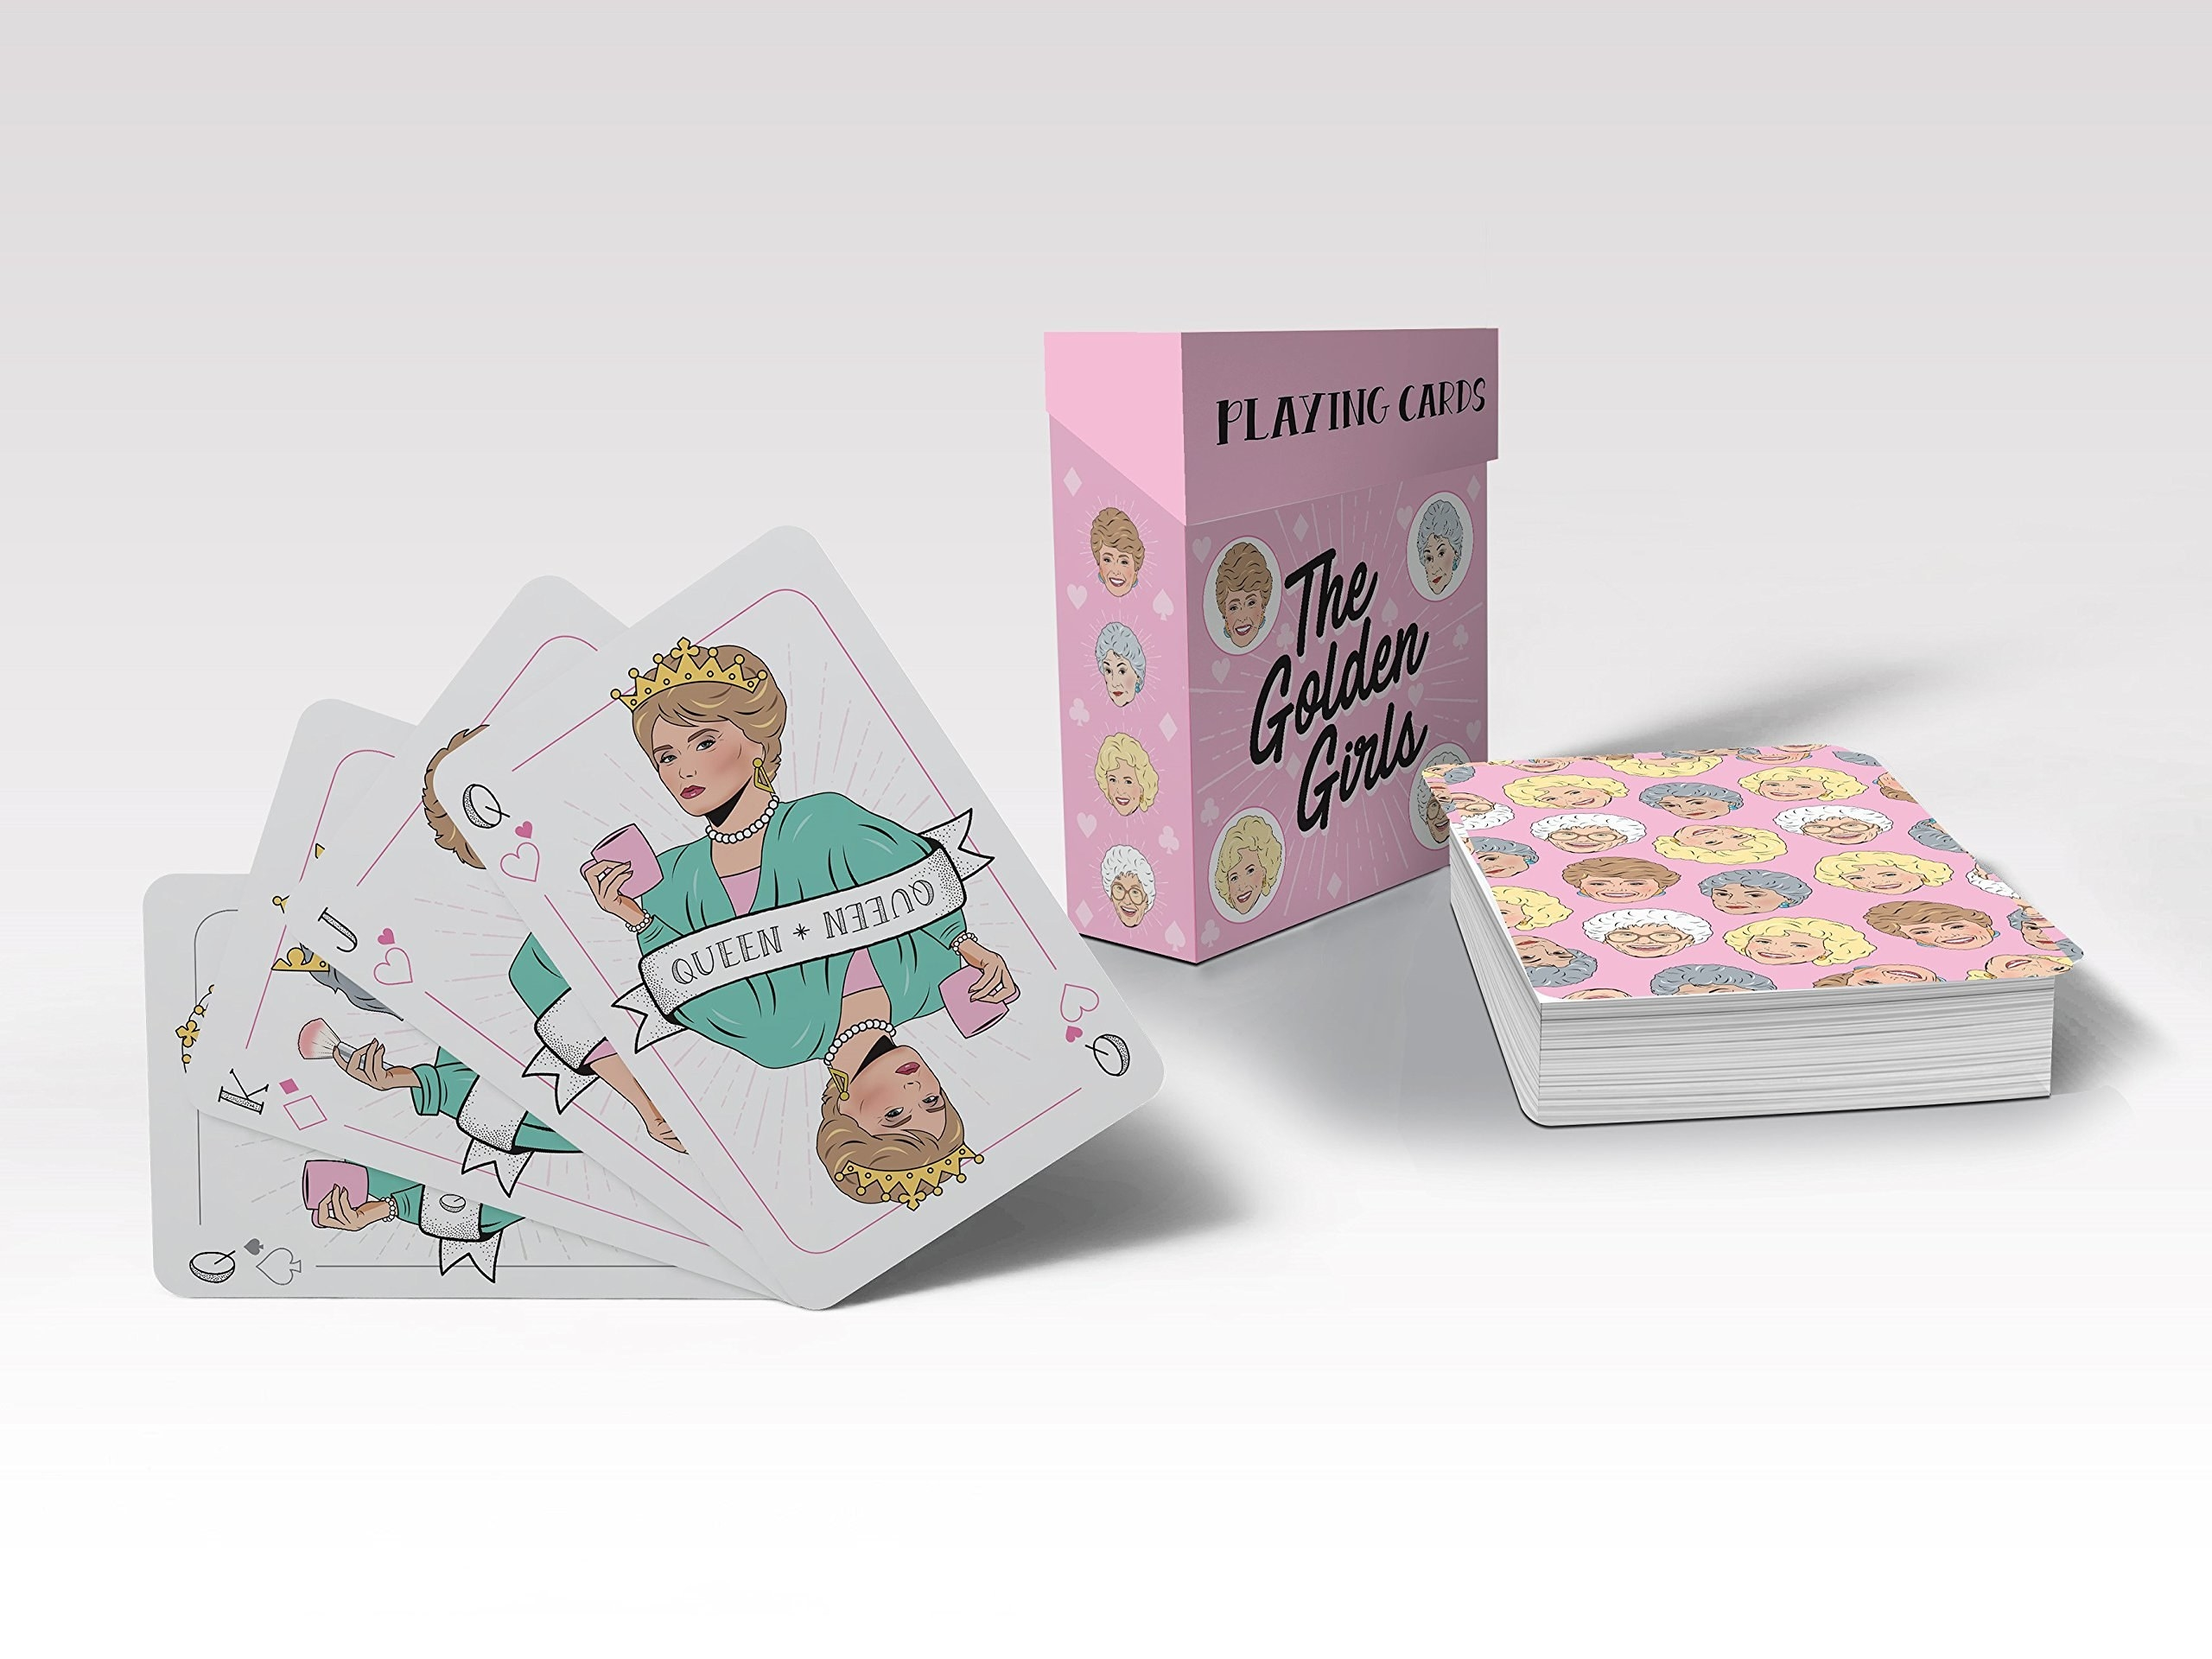 A stack of cards with illustrations from The Golden Girls on them